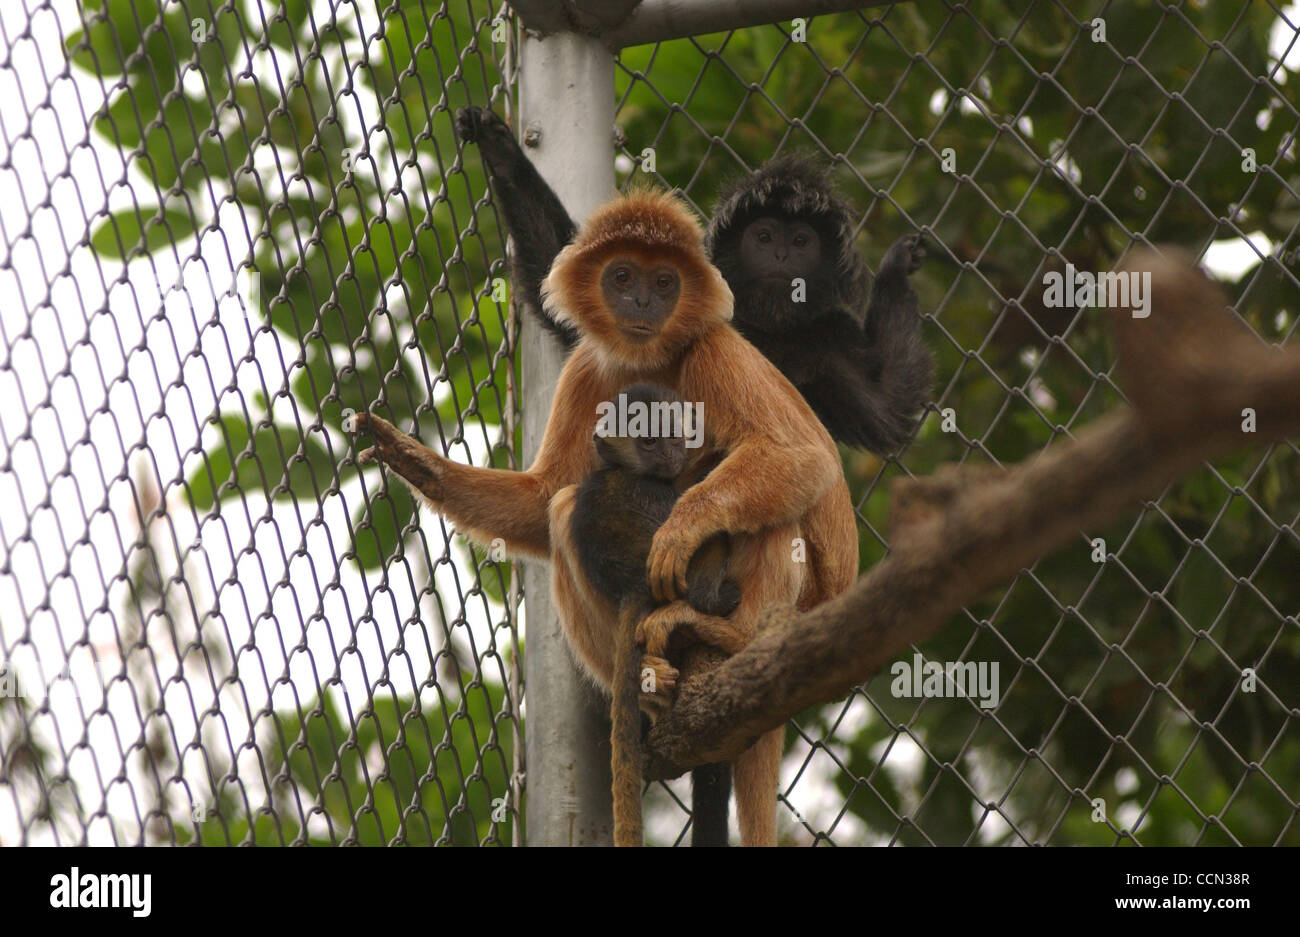 Java monkey in the wild and at home 19